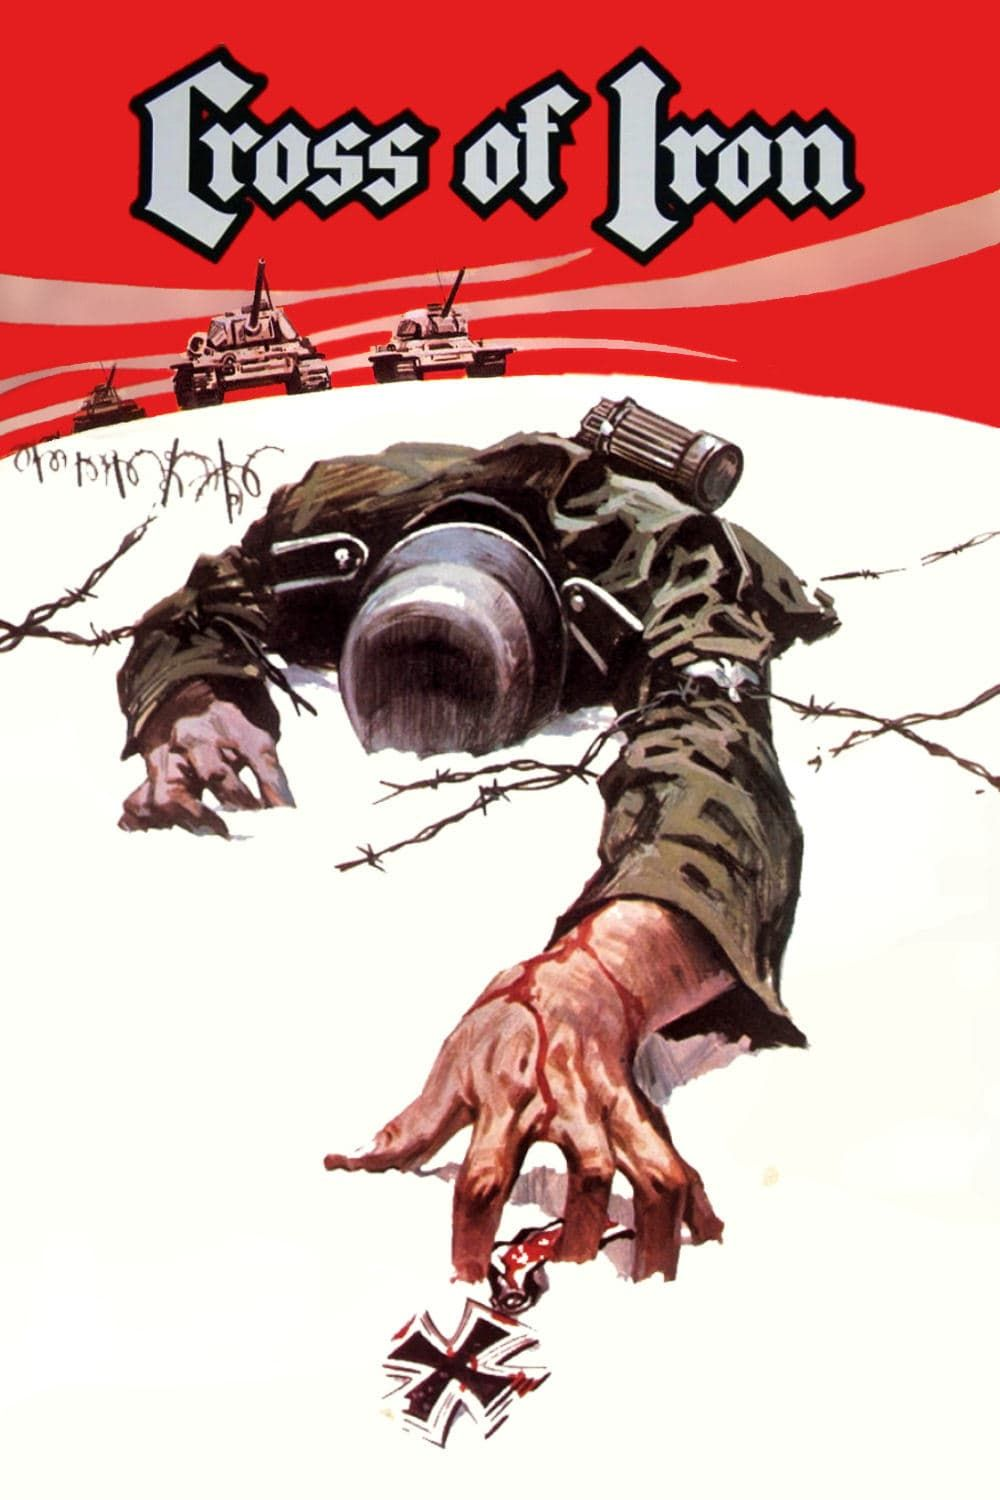 Cross of Iron (1977) poster Cross of iron, Full movies